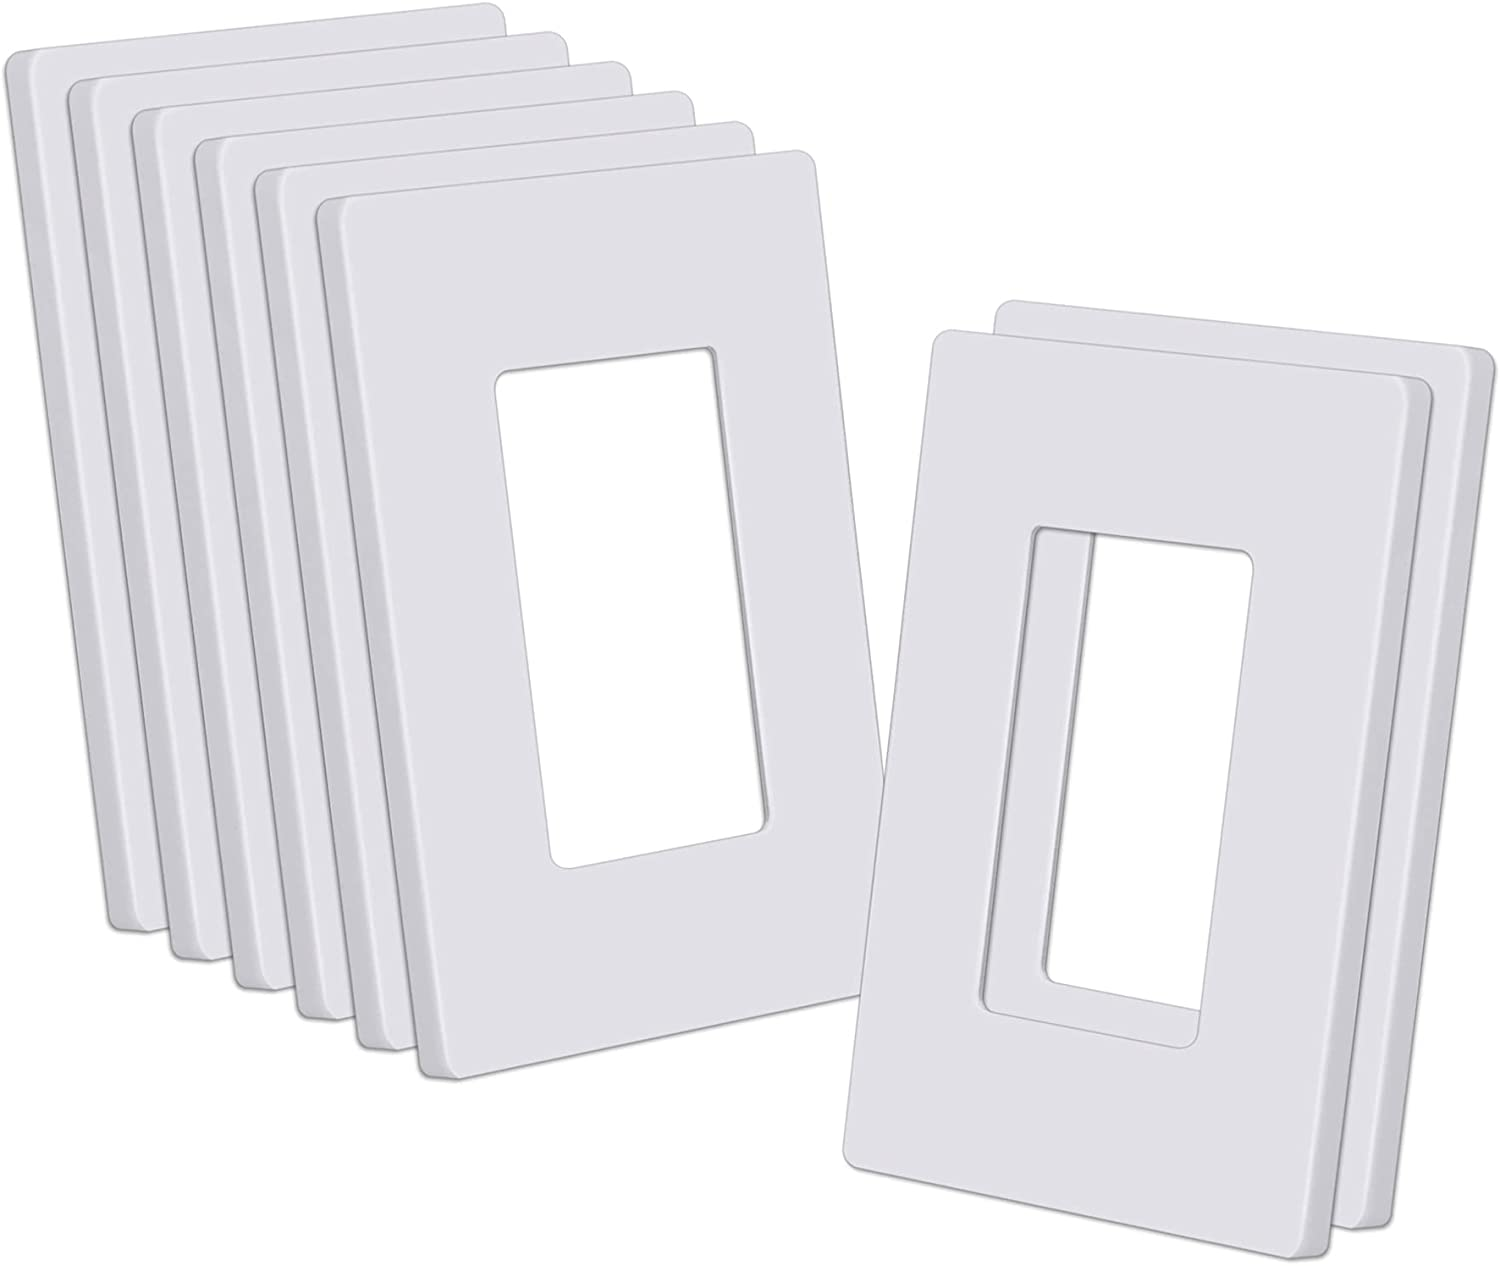 """CML Decorator Screwless Wall Plate, 1-Gang Switch Outlet Cover, 8 Pack Hidden Screw Smooth Face Switch Plates, Standard Size 2.91""""x4.68"""", Impact Resistant, White"""